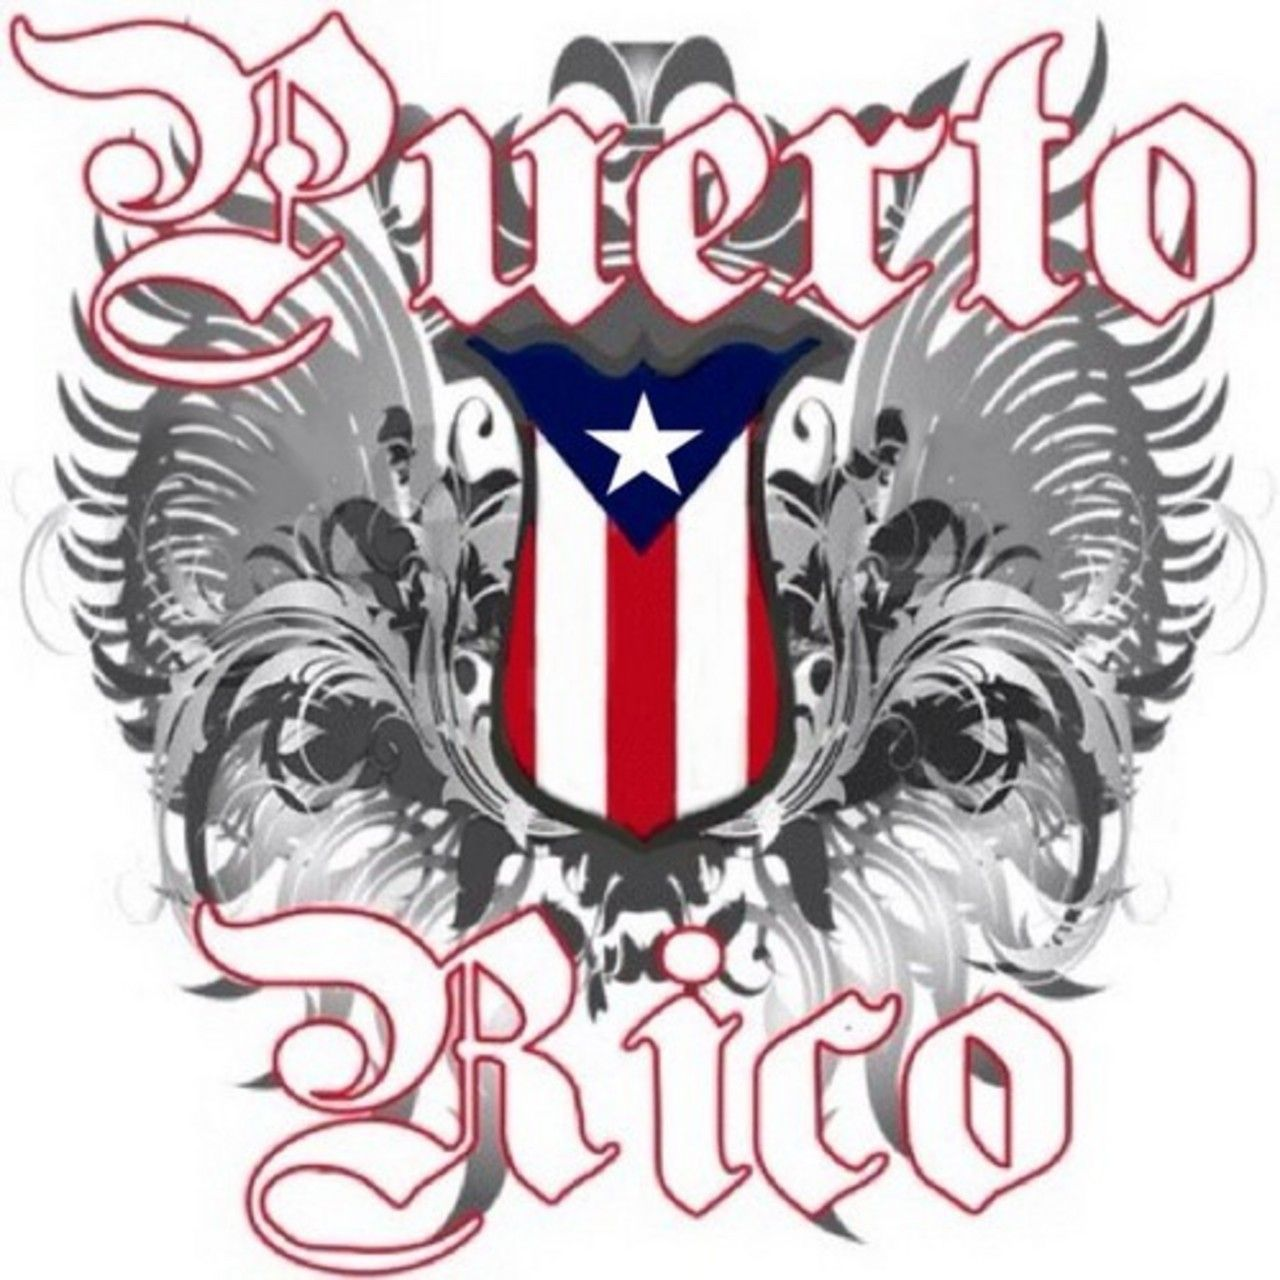 Download Puerto Rico Wallpapers To Your Cell Phone Free Puerto